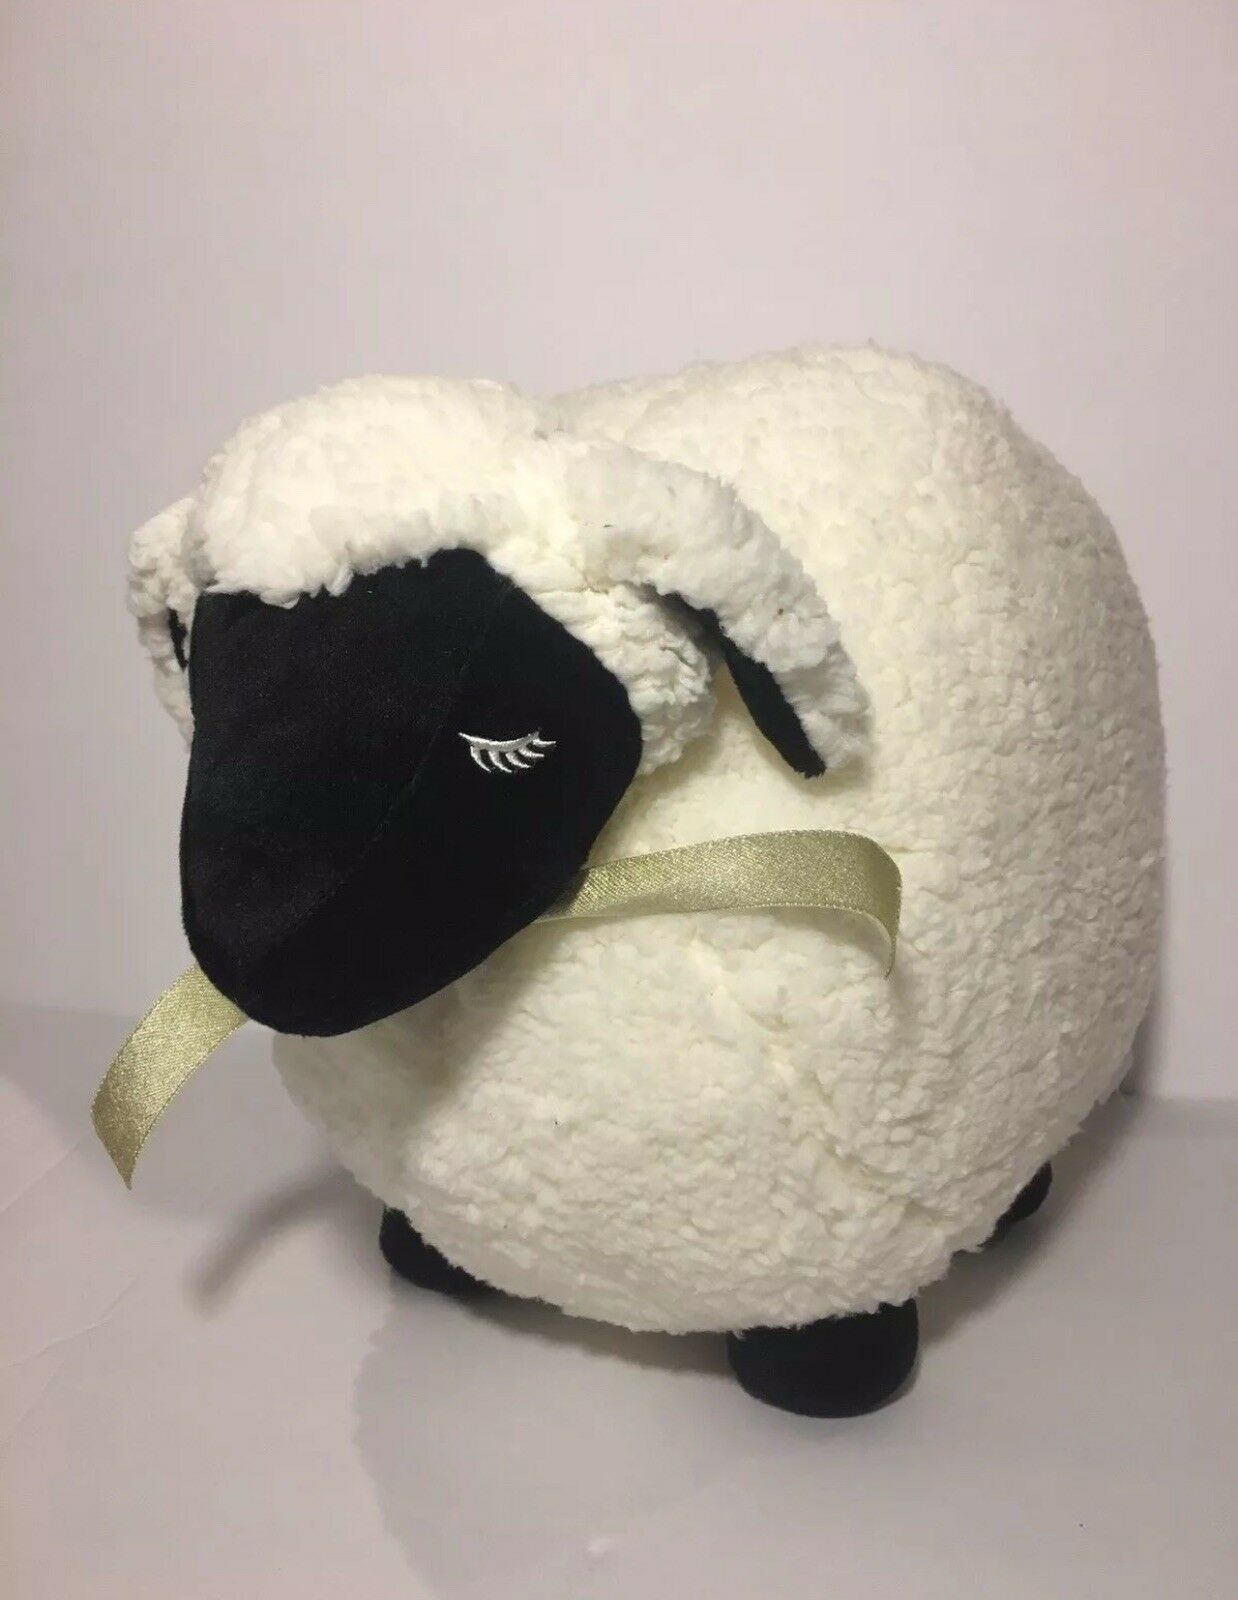 Bath & Body Works Lambie Plush Large 14 Brand Nuovo Stuffed Animal Lamb 2018 Sheep